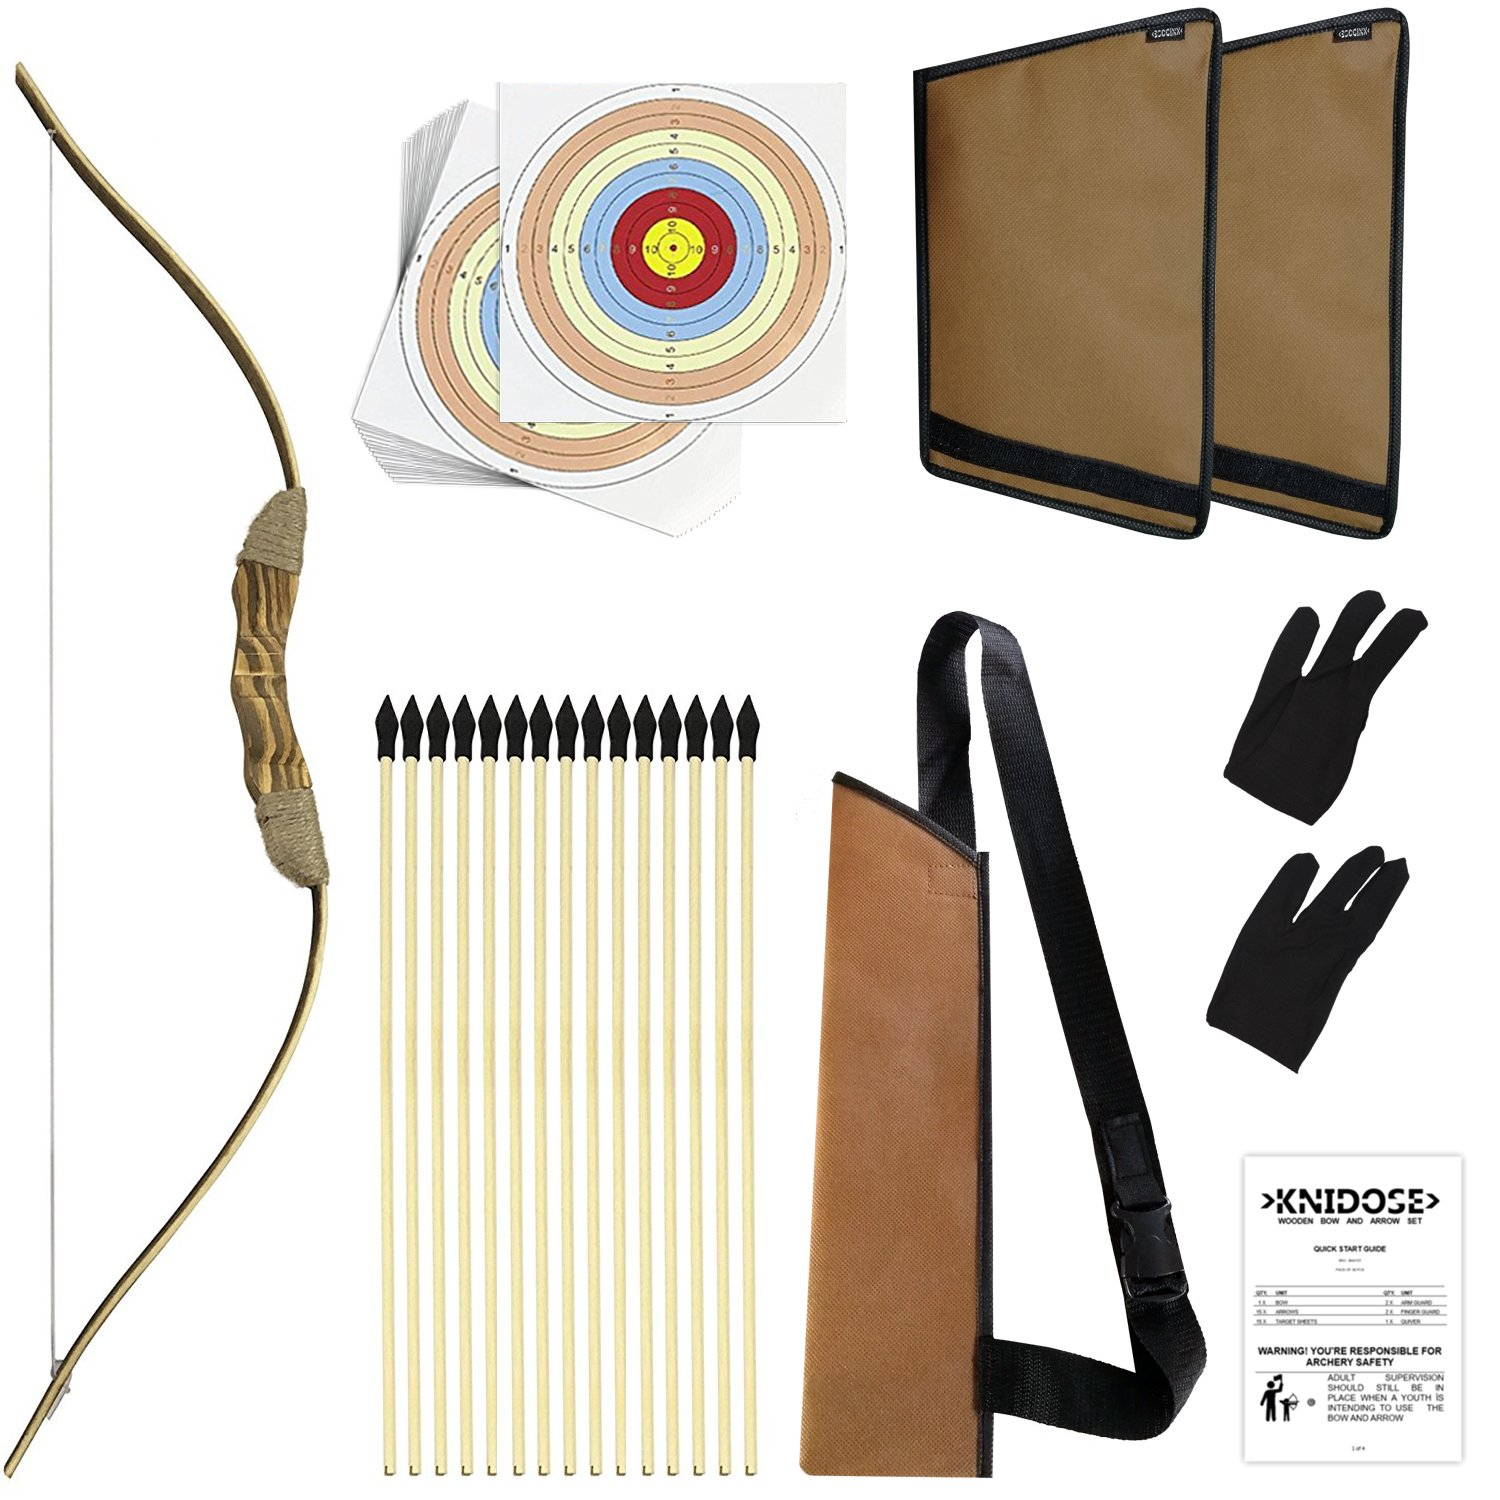 Knidose Beginners Bow Arrow Kids | 36 Pieces Safe Archery Set Outdoor Indoor Fun, Handcrafted Wooden 1 Bow, 15 Arrows, 15 Target Sheets, 1 Quiver, 2 Arm 2 Finger Guards Shooting Toy